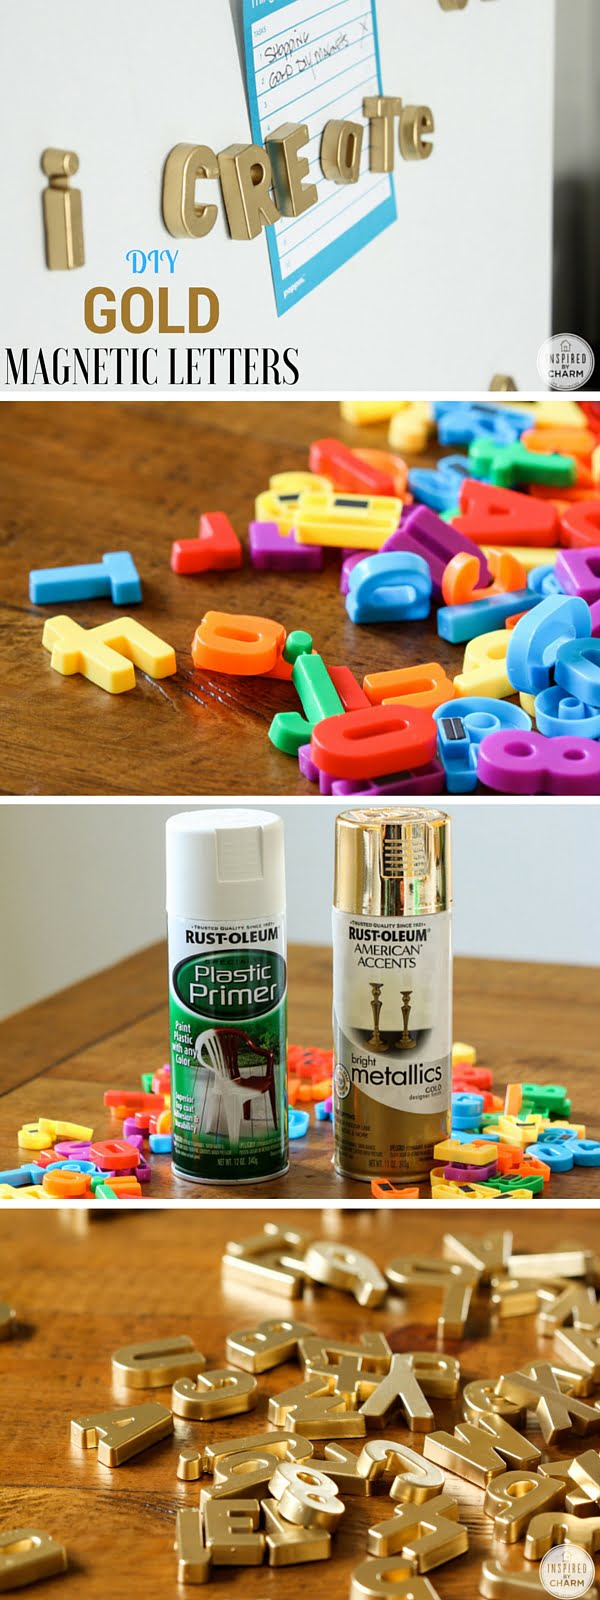 15 Easy and Brilliant DIY Home Decor Crafts on a Budget - Check out the tutorial: #DIY Gold Magnetic Letters